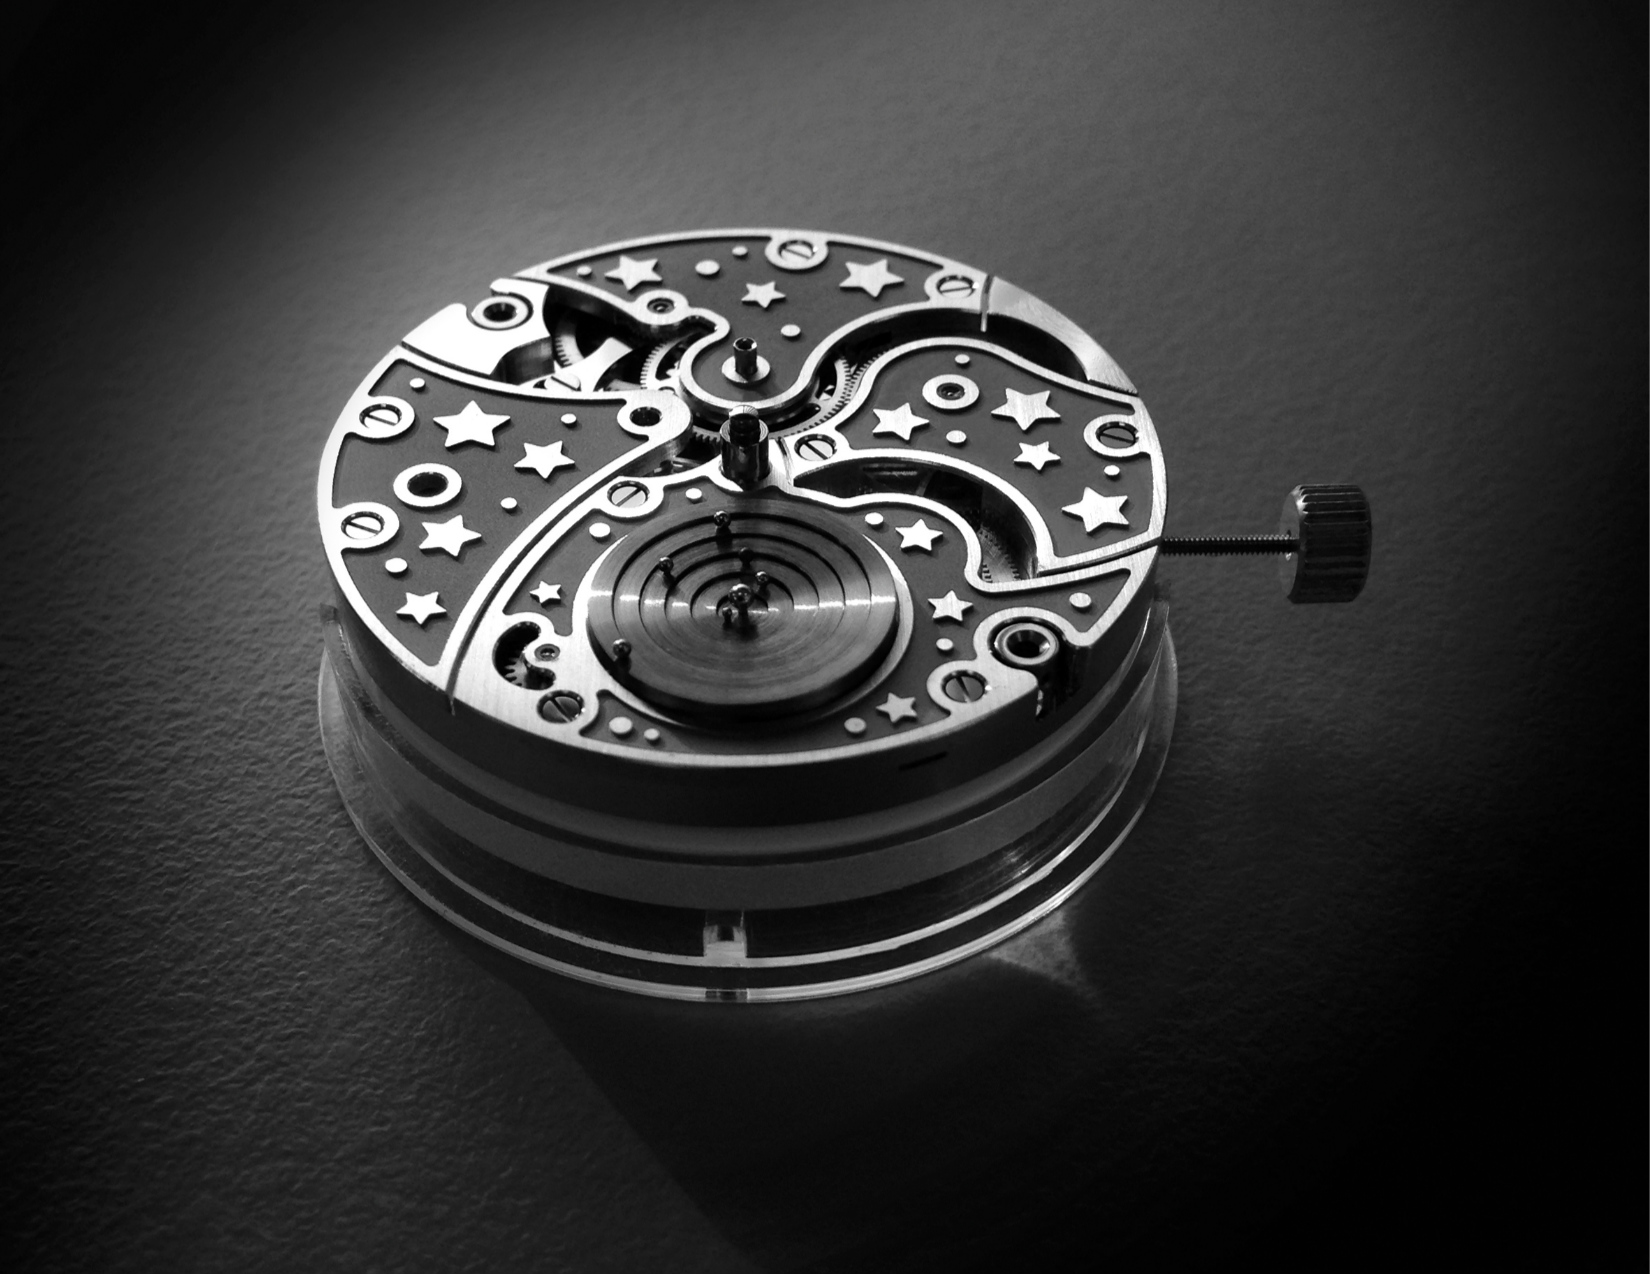 Christiaan van der klaauw watch movement